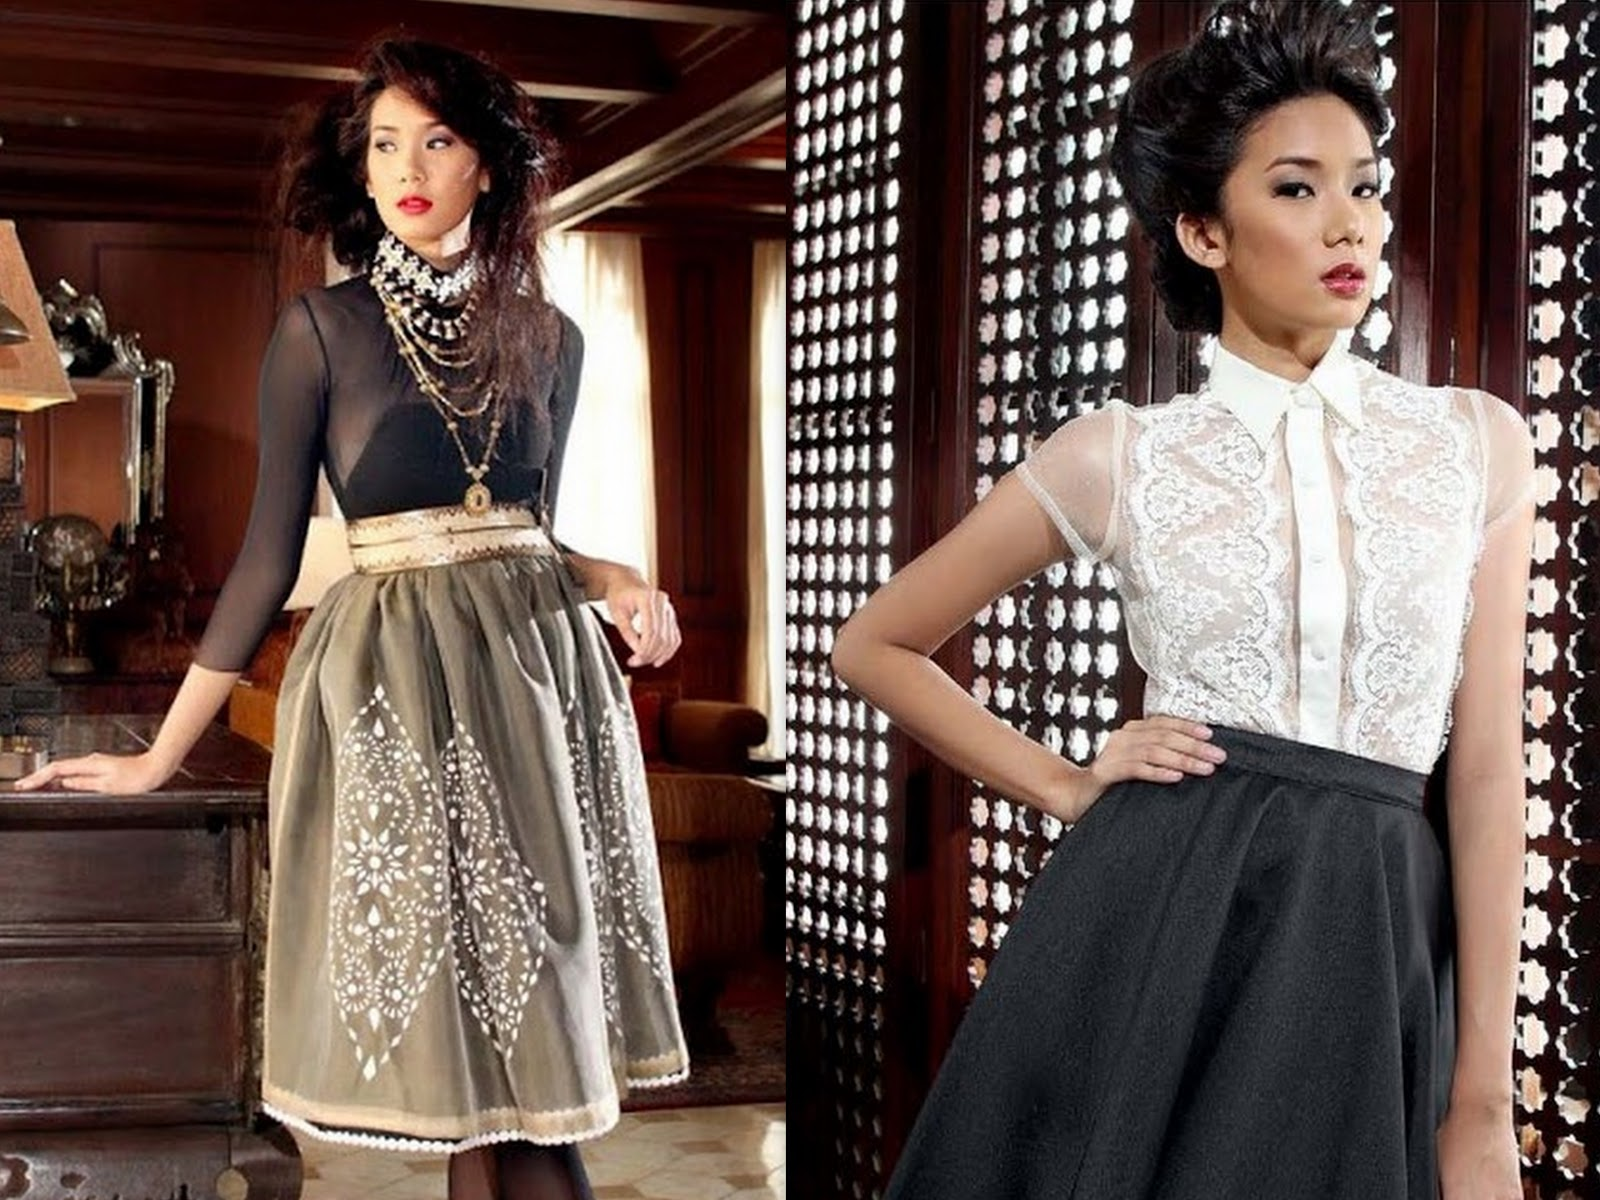 8280794e54 ... silk organdy by Danilo Franco (Right) Feminine blouse in floral lacey  details based on men s formal Barong Tagalog and bias-cut full skirt by JC  Buendia